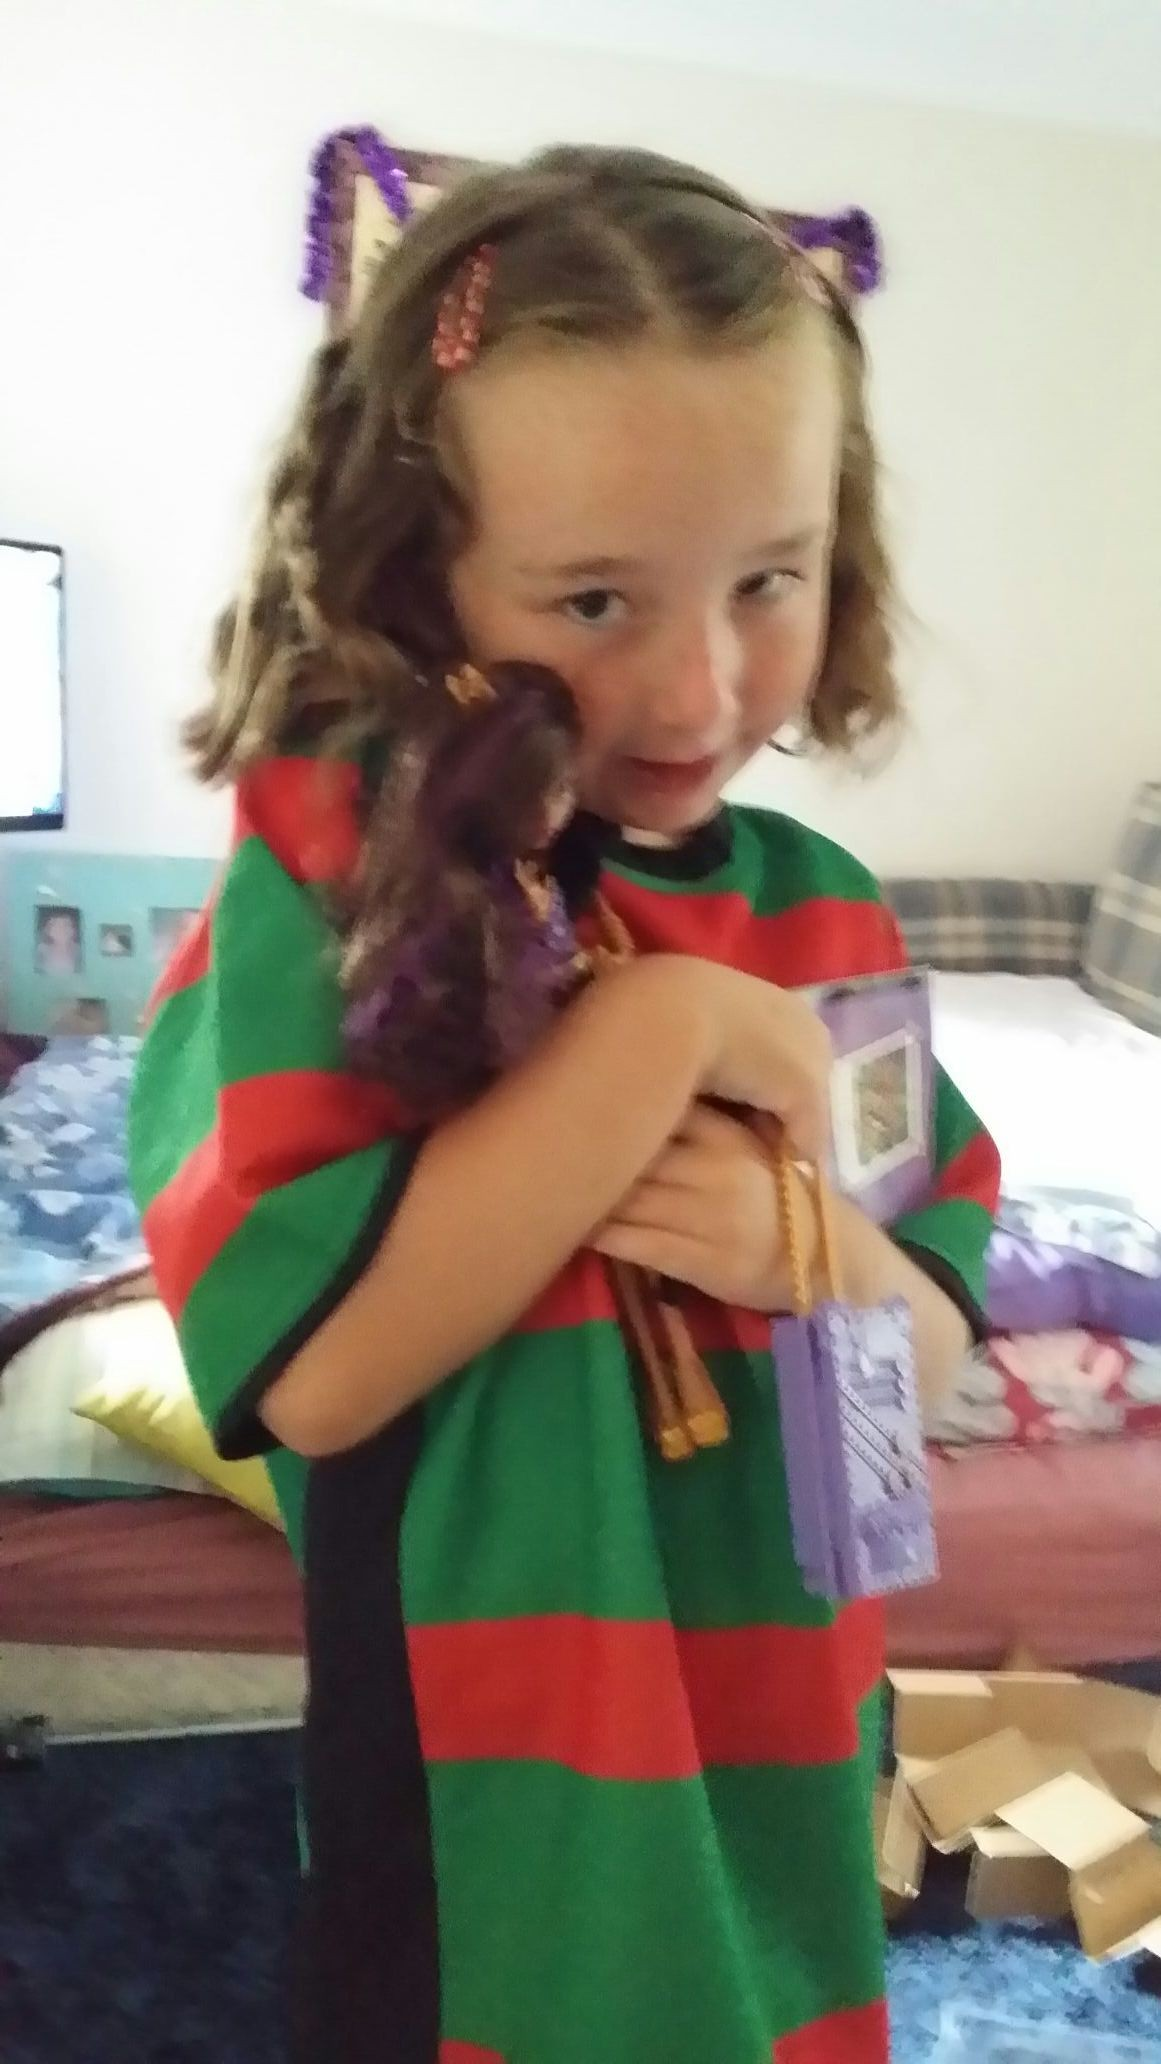 Hollies 2 favourite pressies..her new bunnies jumper n her monster high doll...n shes even gonna wear it 2 church lol..